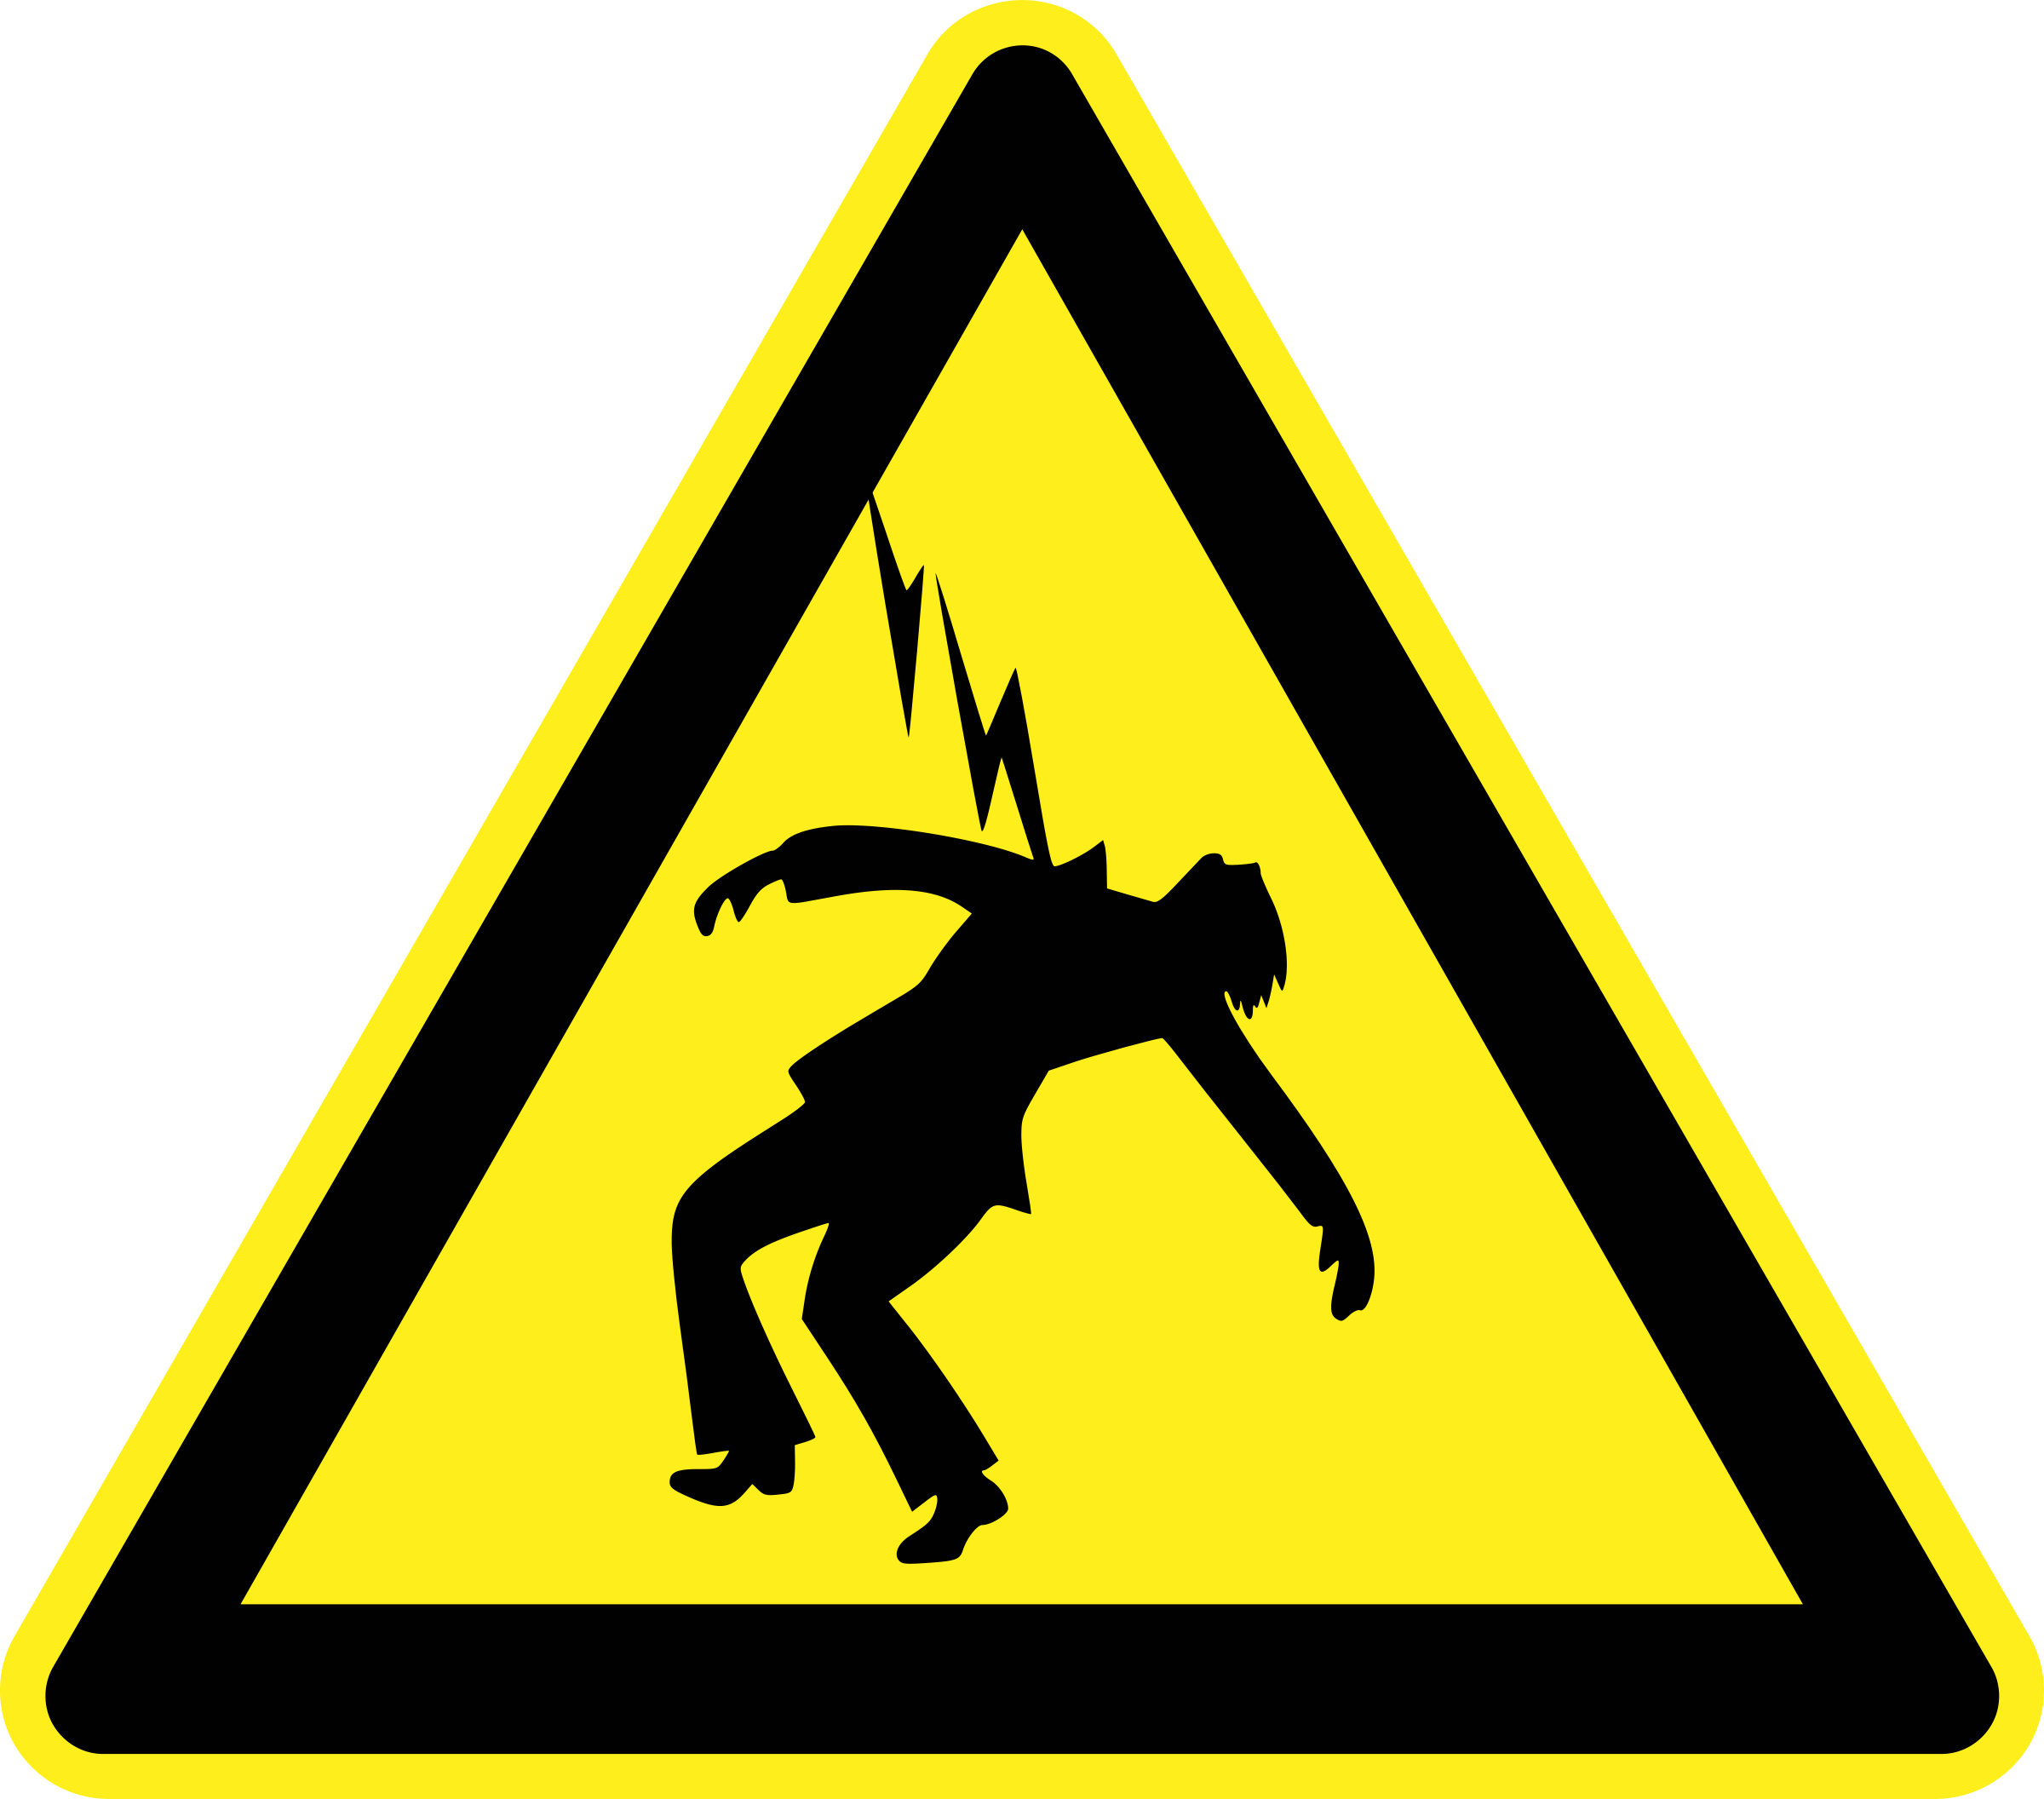 Danger High Voltage Warning Sign by h0us3s